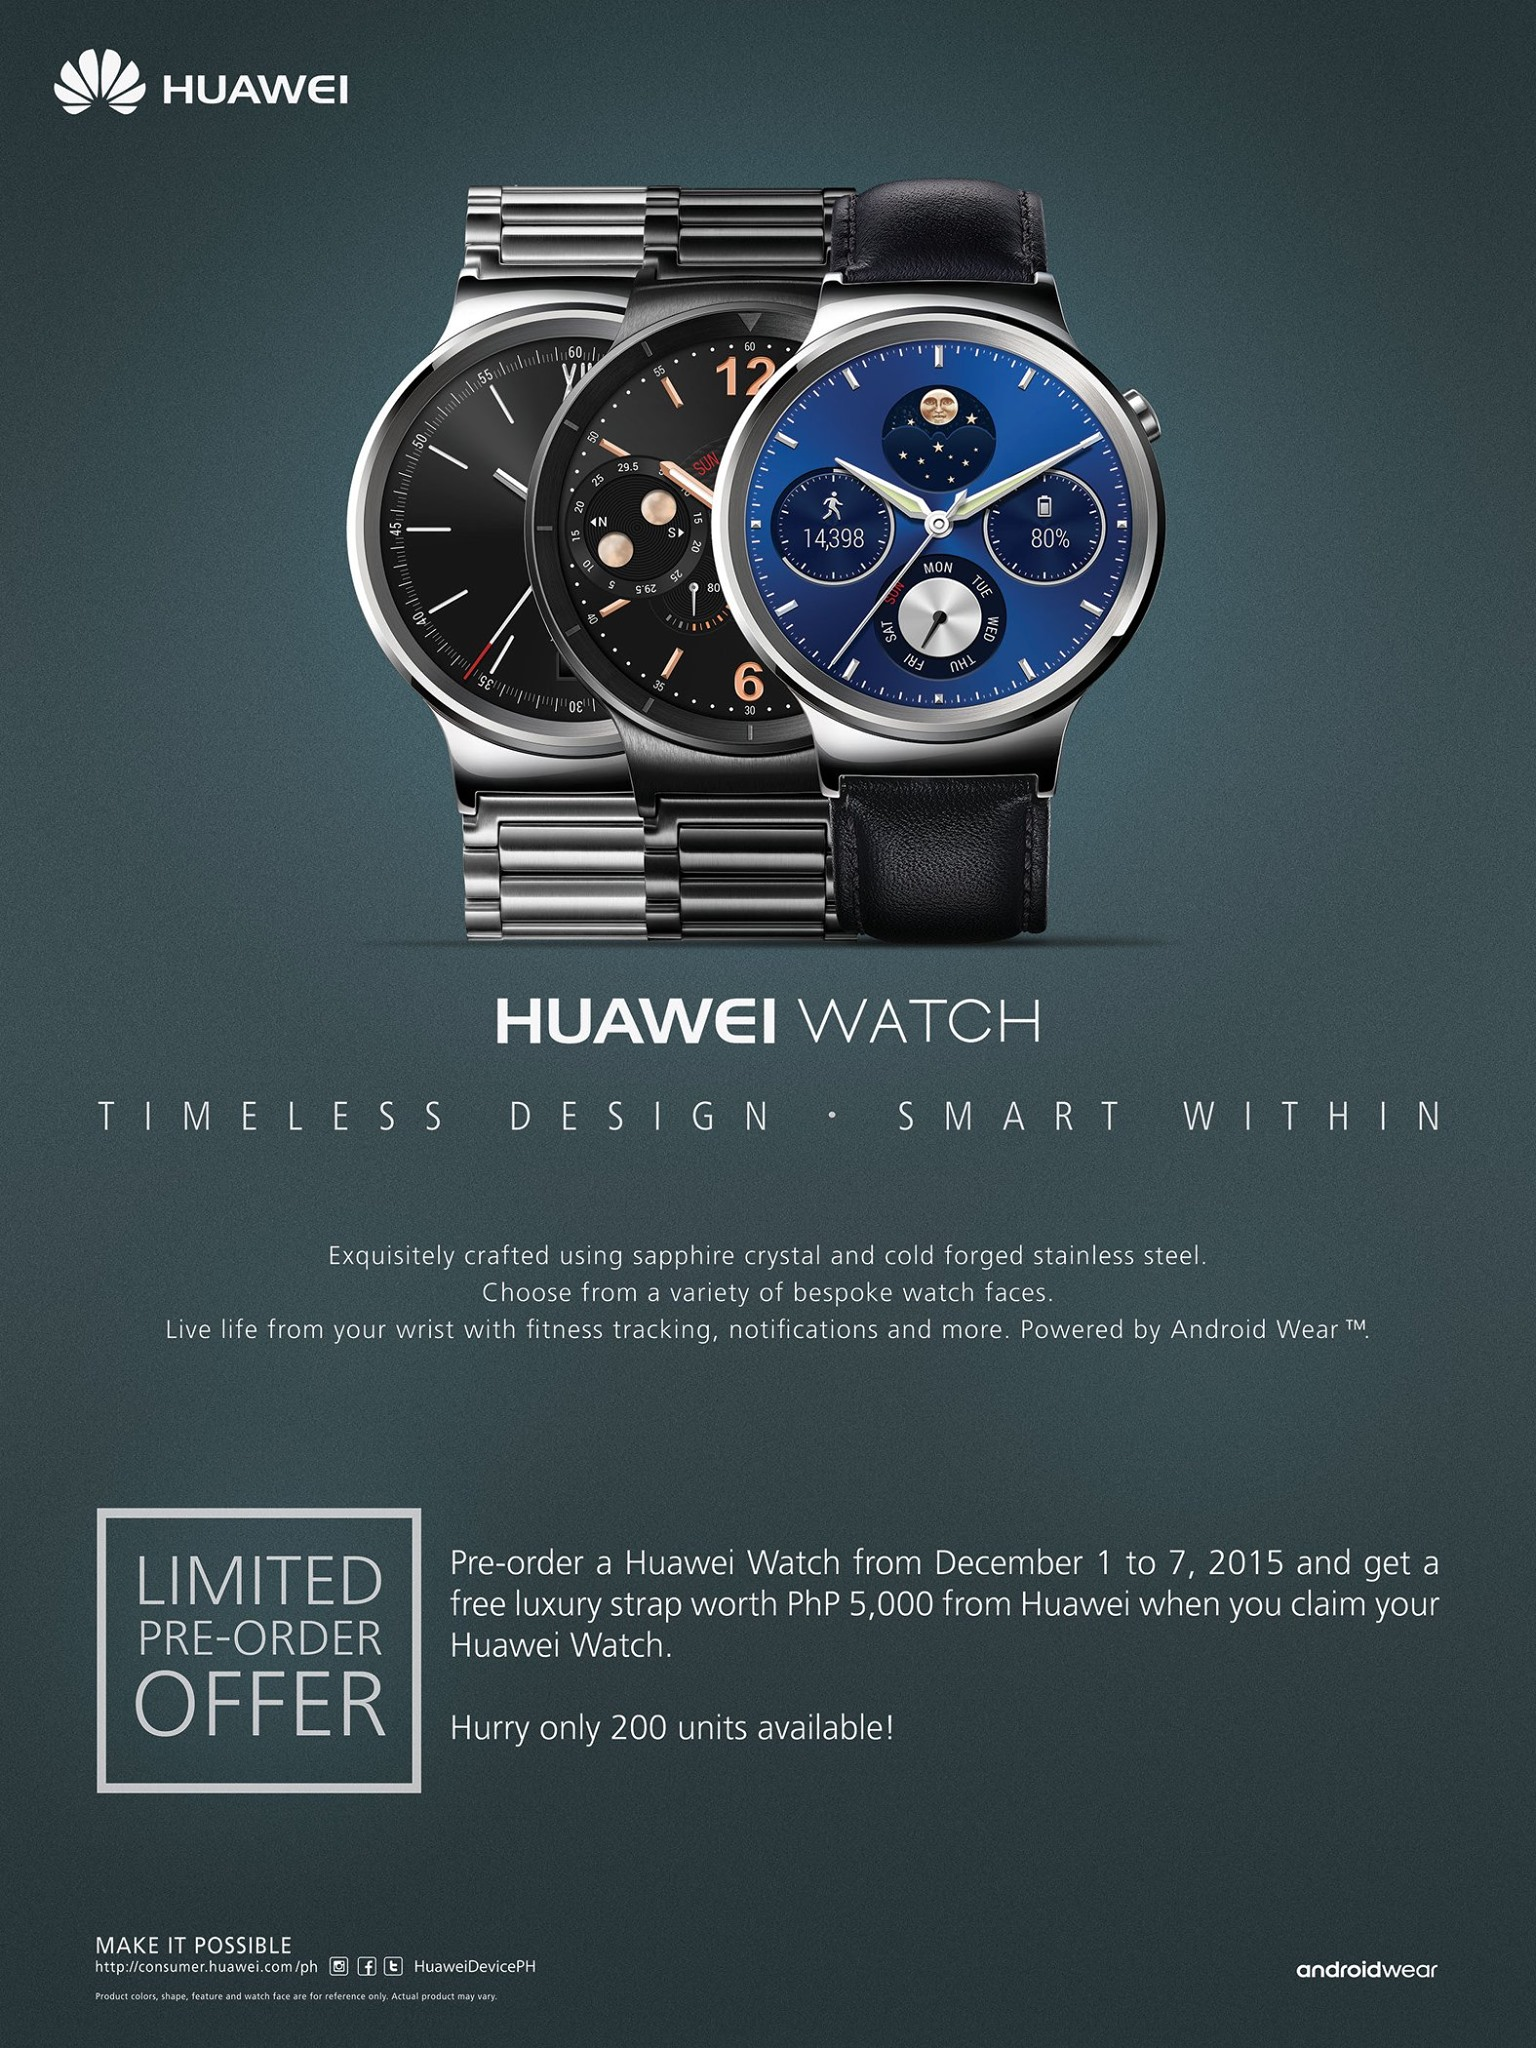 Pre-Order Your Huawei Watch Now!